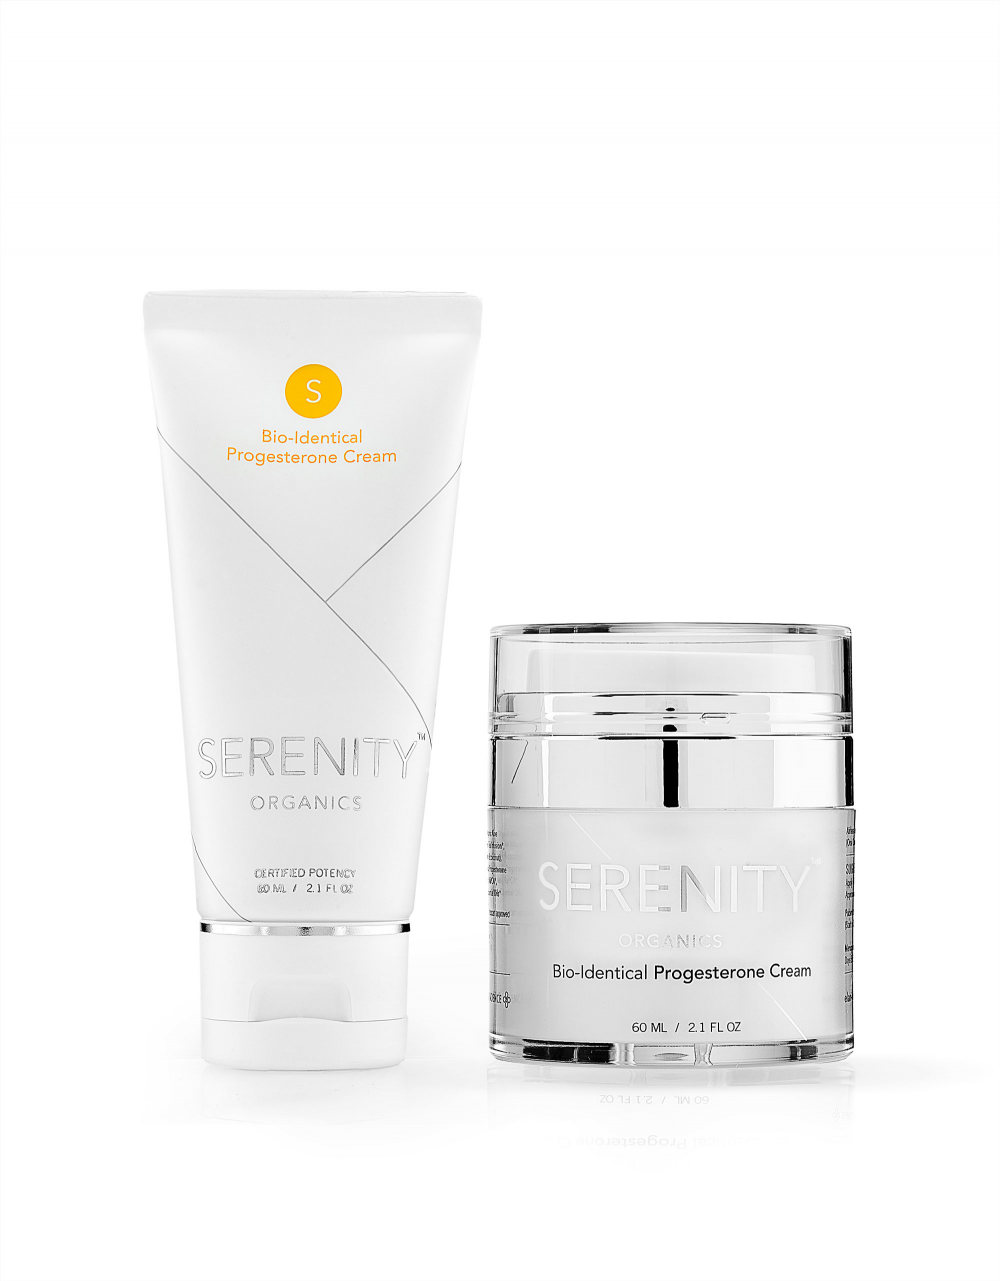 SERENITY-ORGANICS-Airless-Jar-and-tube-Serenity-Bio-Identical-Progesterone-Cream-PMS-Menopause-Infertility-Osteoporosis